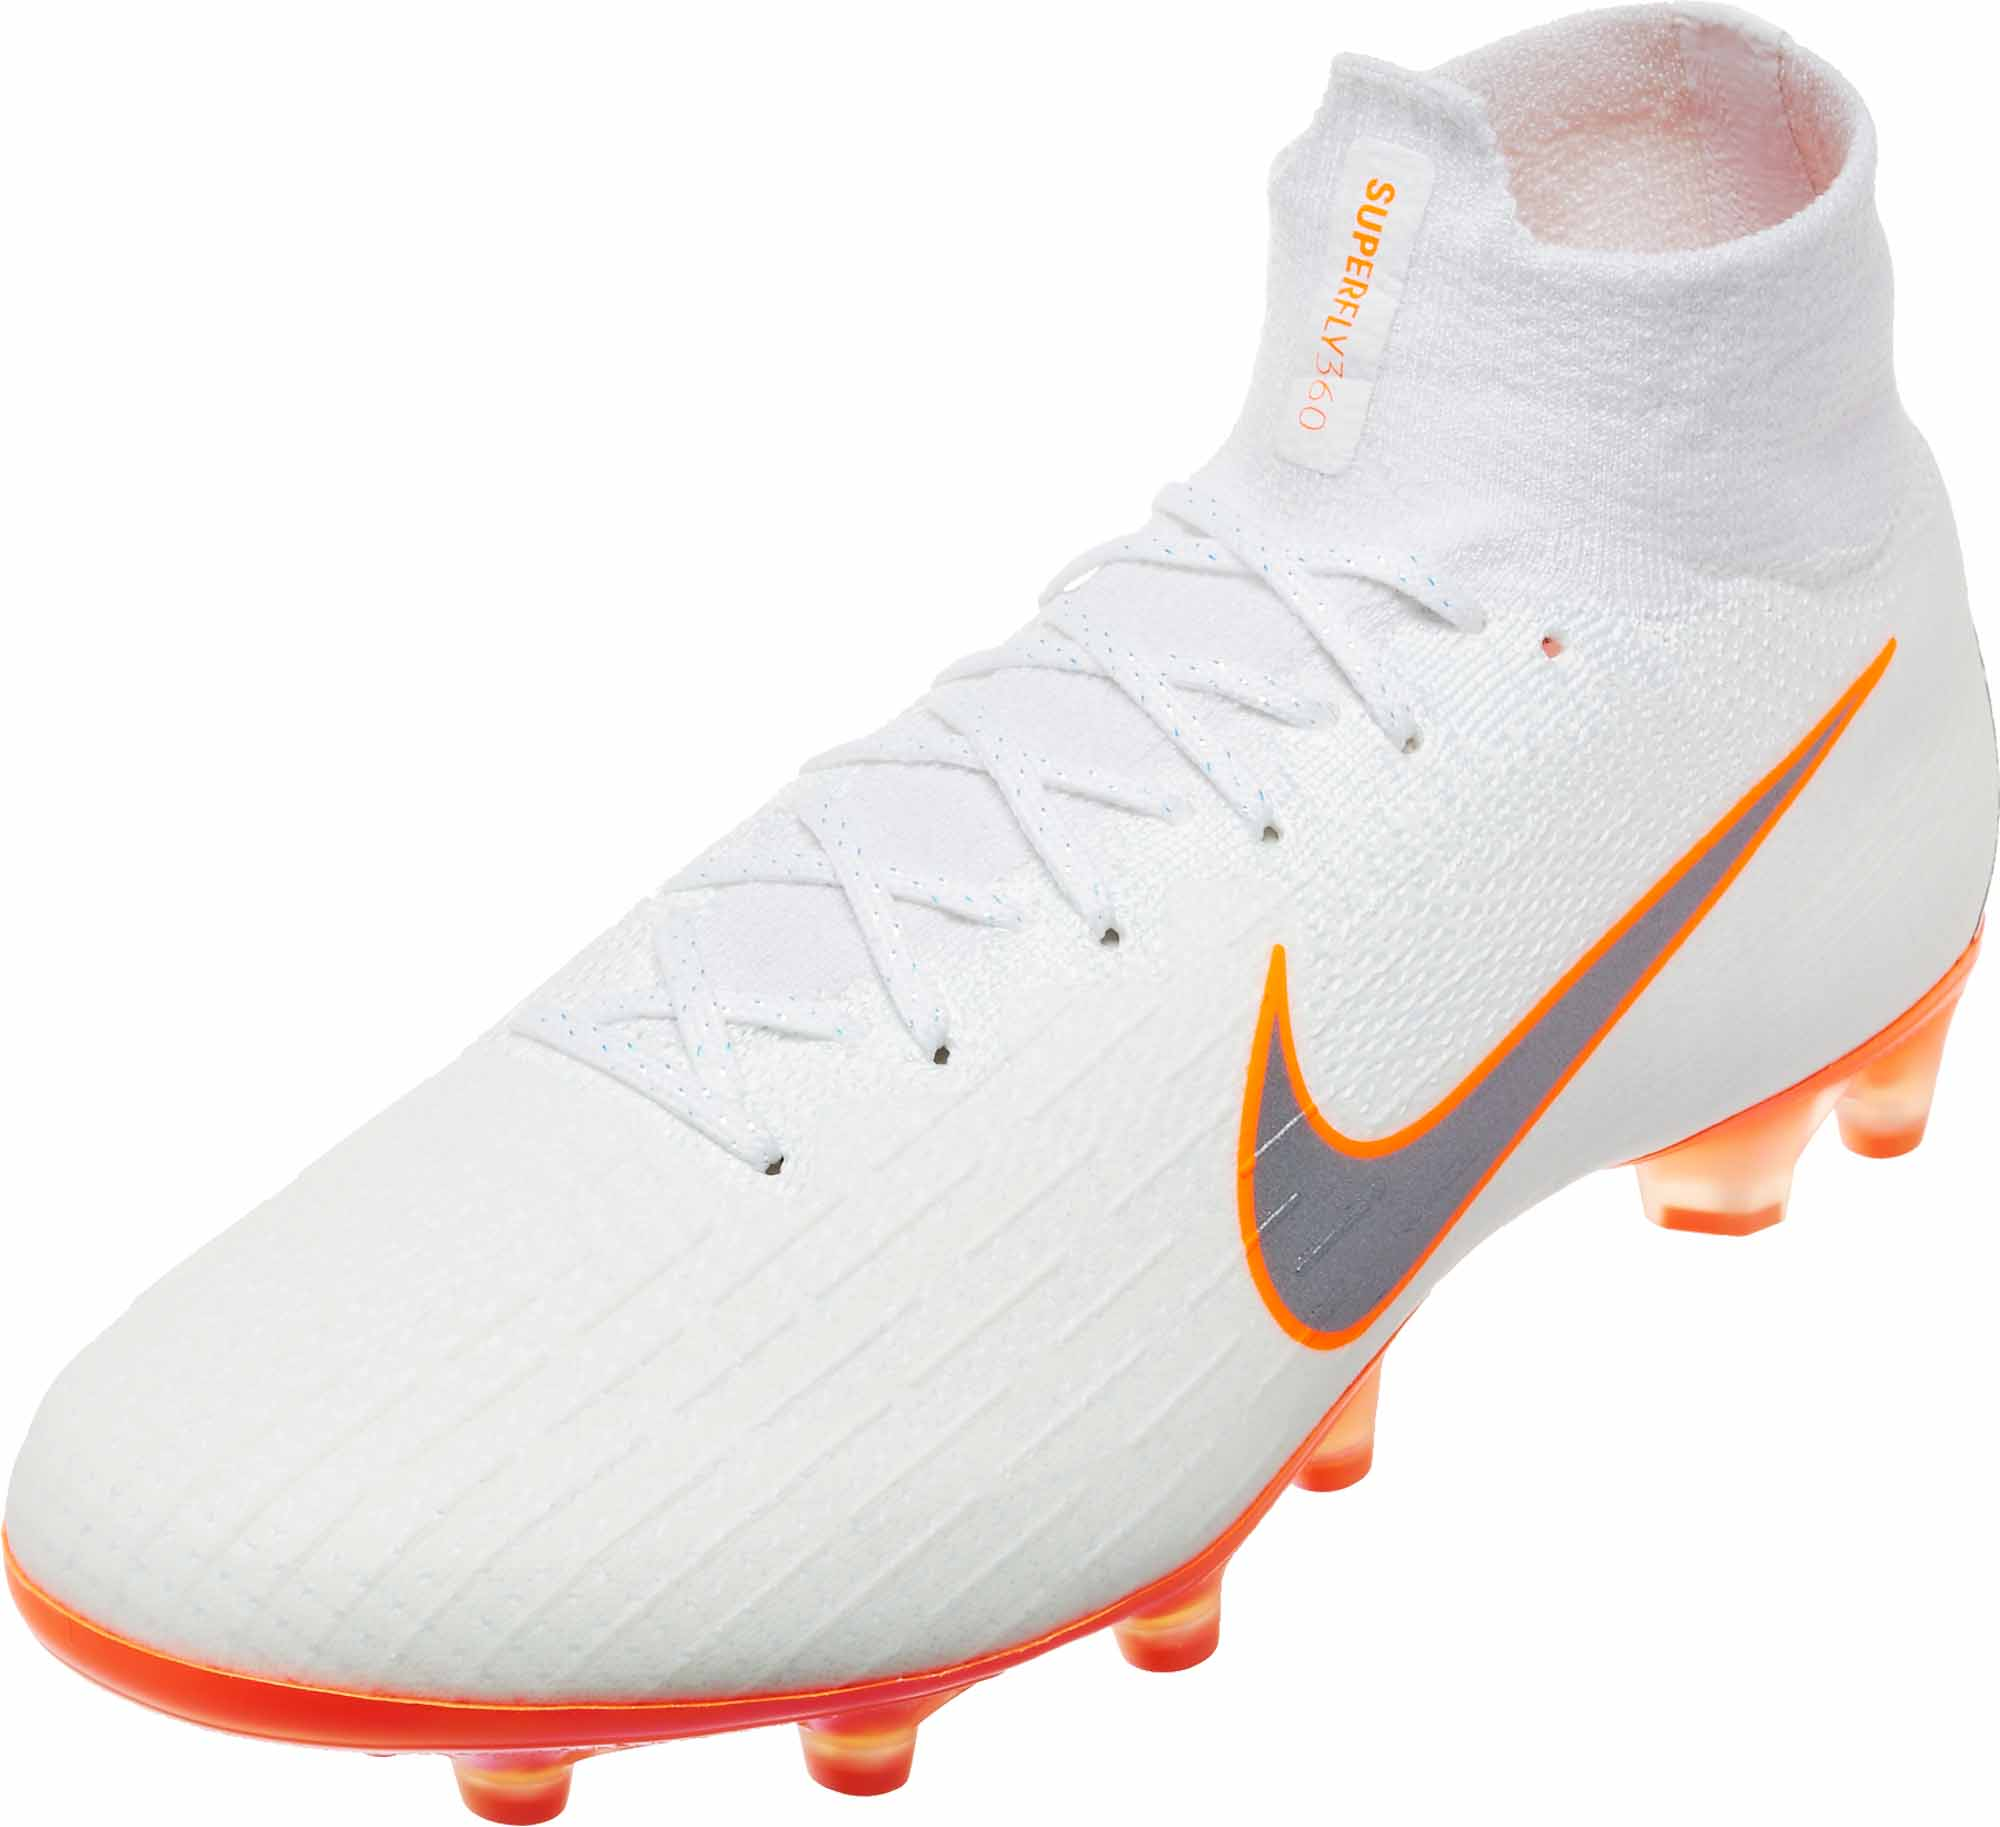 77d6b639230 Nike Mercurial Superfly 6 Elite AG - Pro - White Total Orange ...